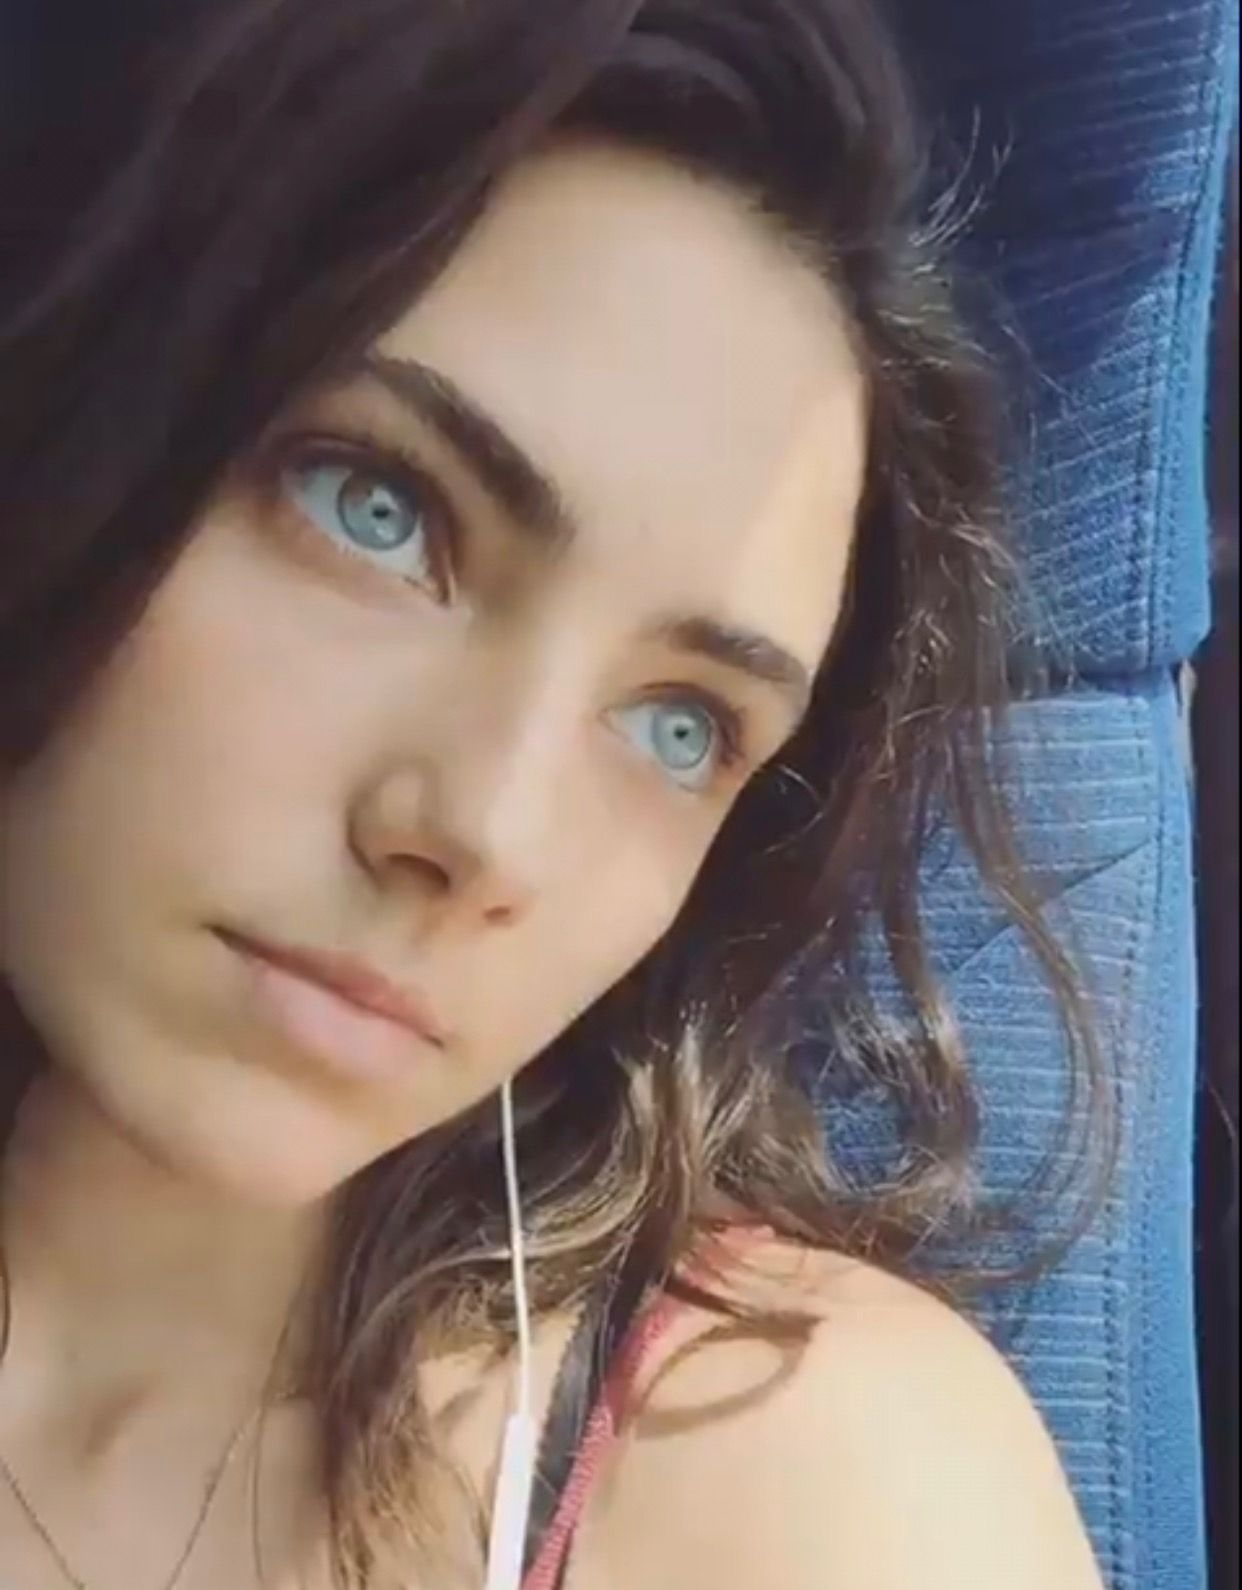 Pin by Fran Cass on Models | Pinterest | Amelia zadro ...